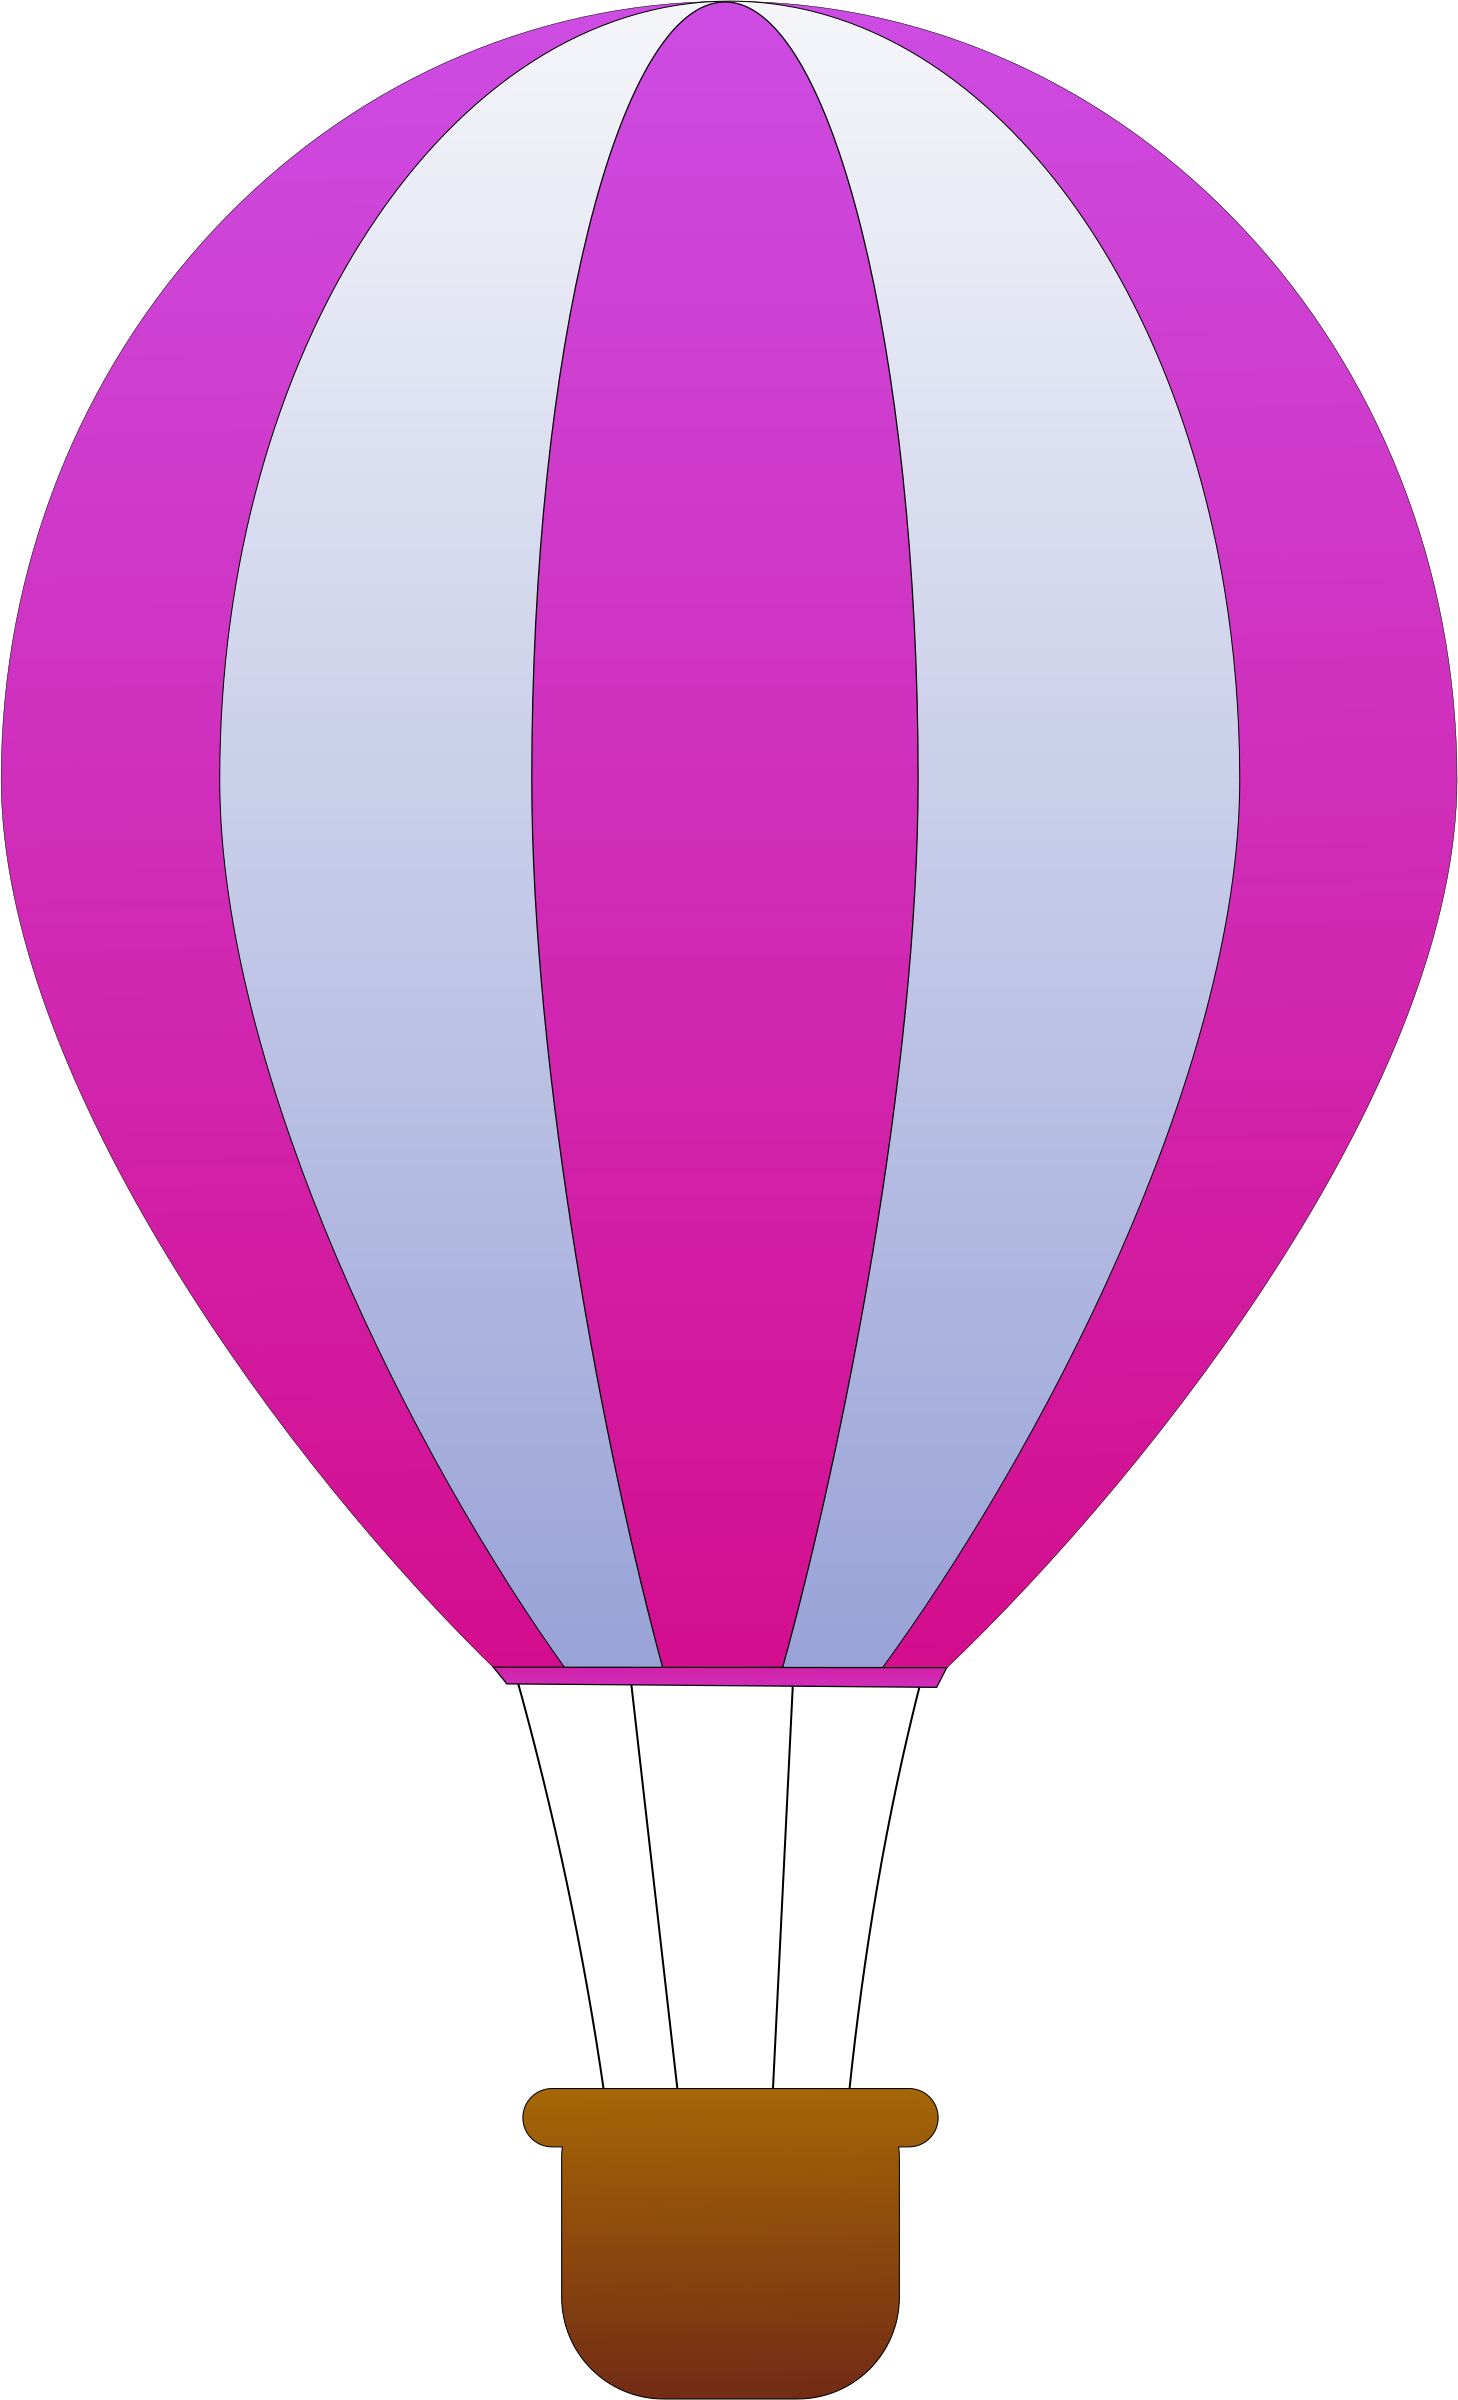 Hot air balloons png. Balloon images free download